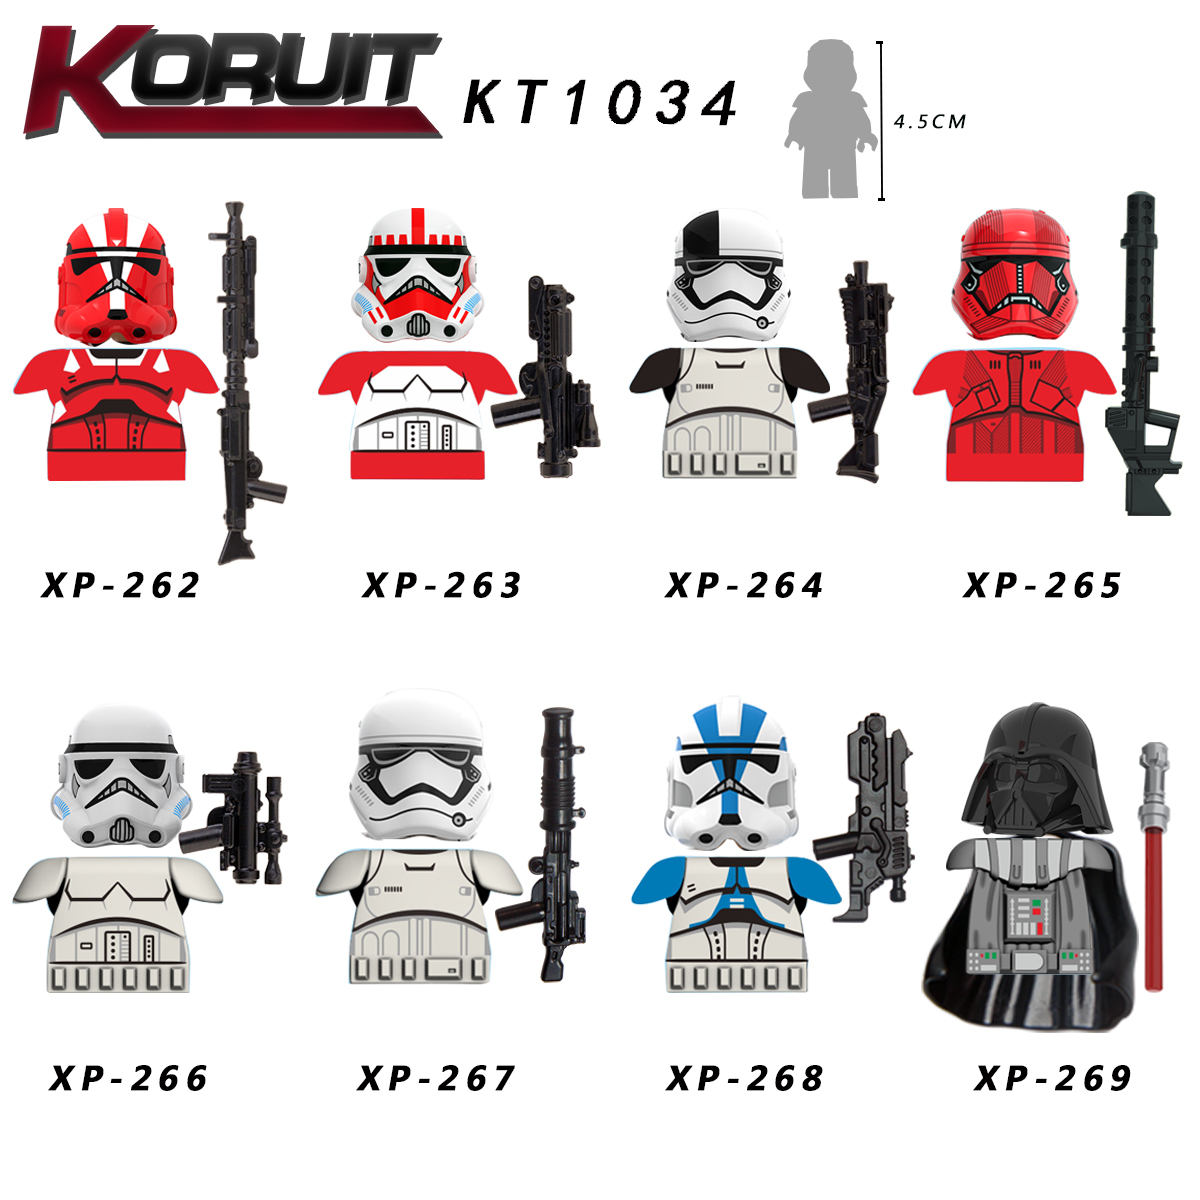 Single Sale Imperial Sith Guard Darth Vader Shock Troopers Mandalo Building Blocks Gifts Toys For Girls Children KT1034